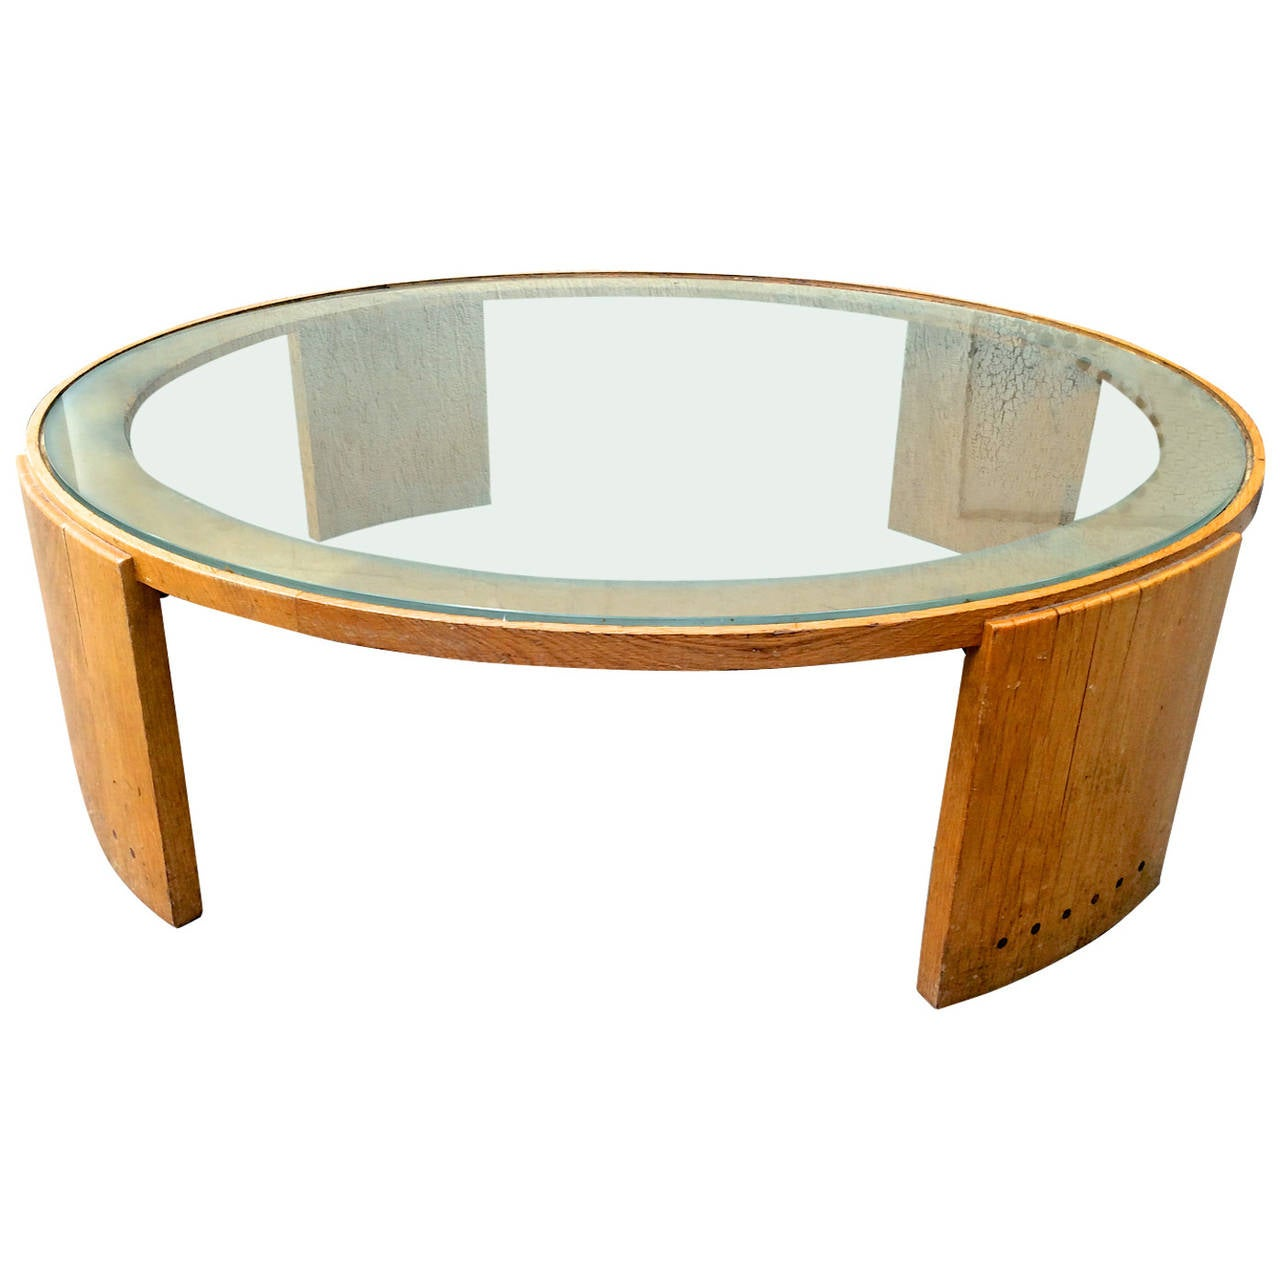 Jacques adnet very large round coffee table in oak and for Coffee tables glass top